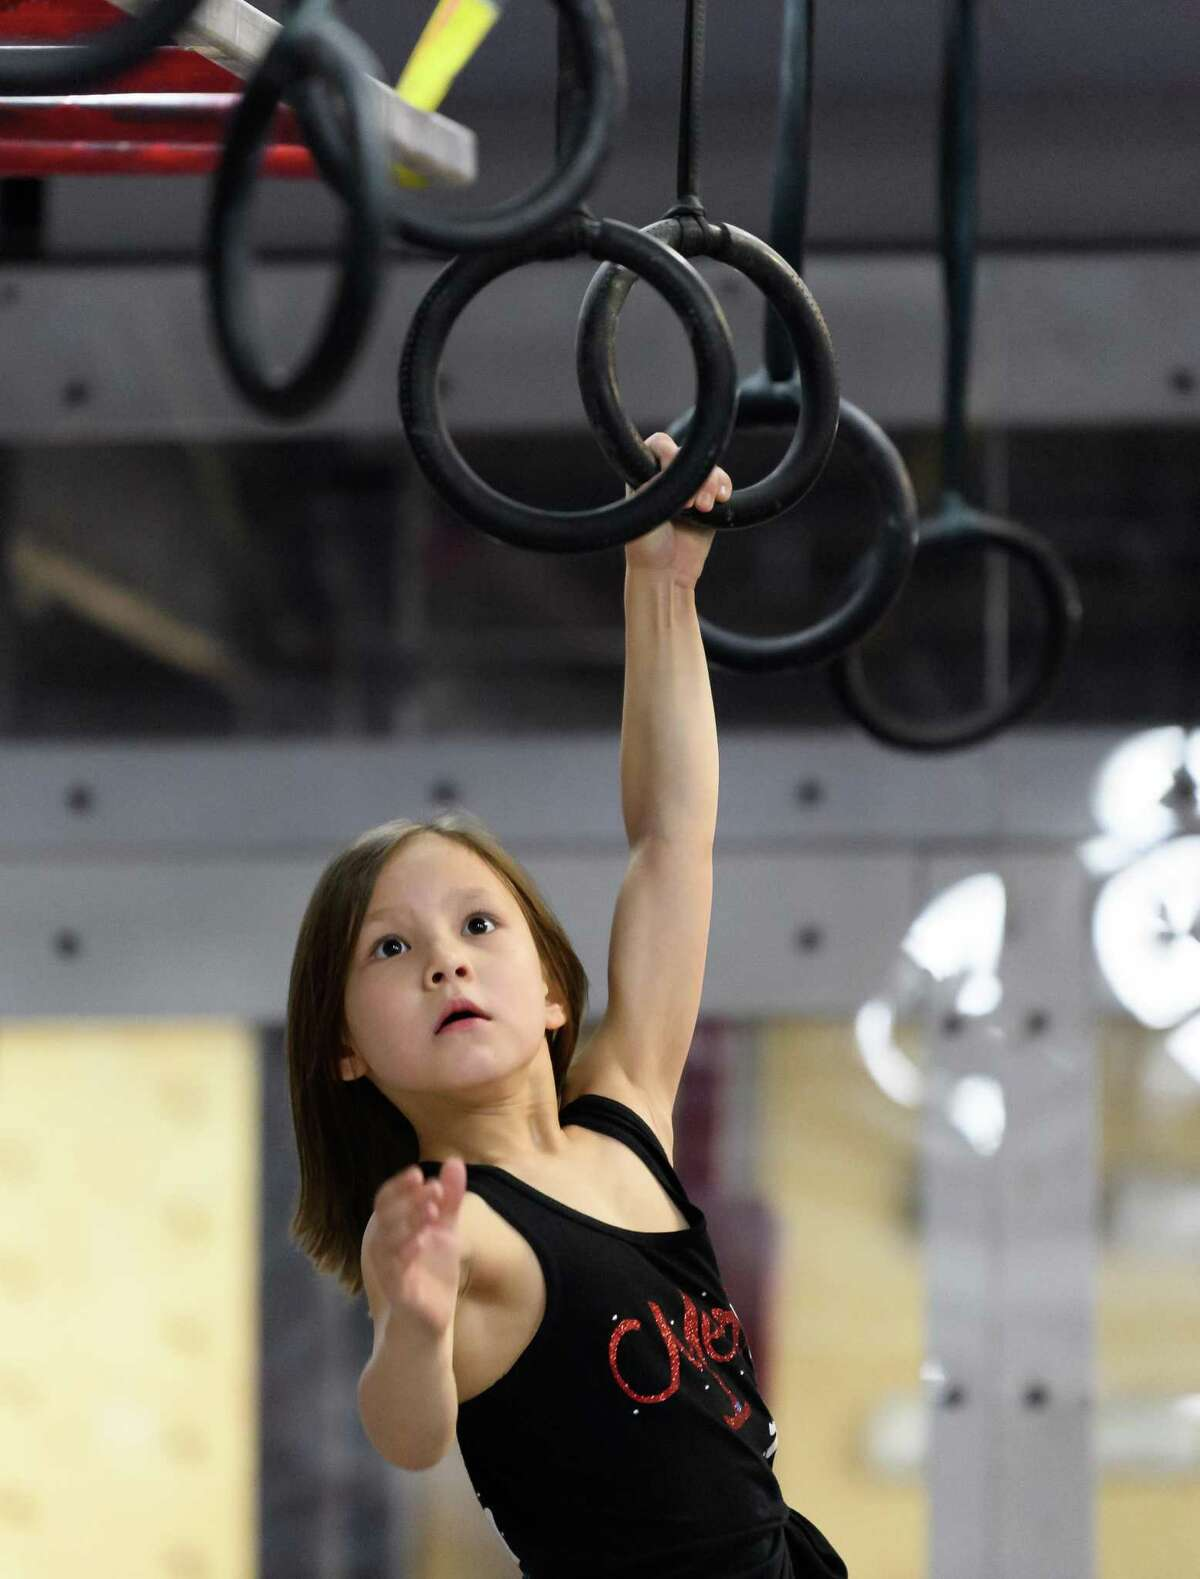 7 year old Maeleigh Kim, Meredith Kim's younger sister works on the Rings on Friday, March 6, 2020 at Iron Sports in Houston Texas.